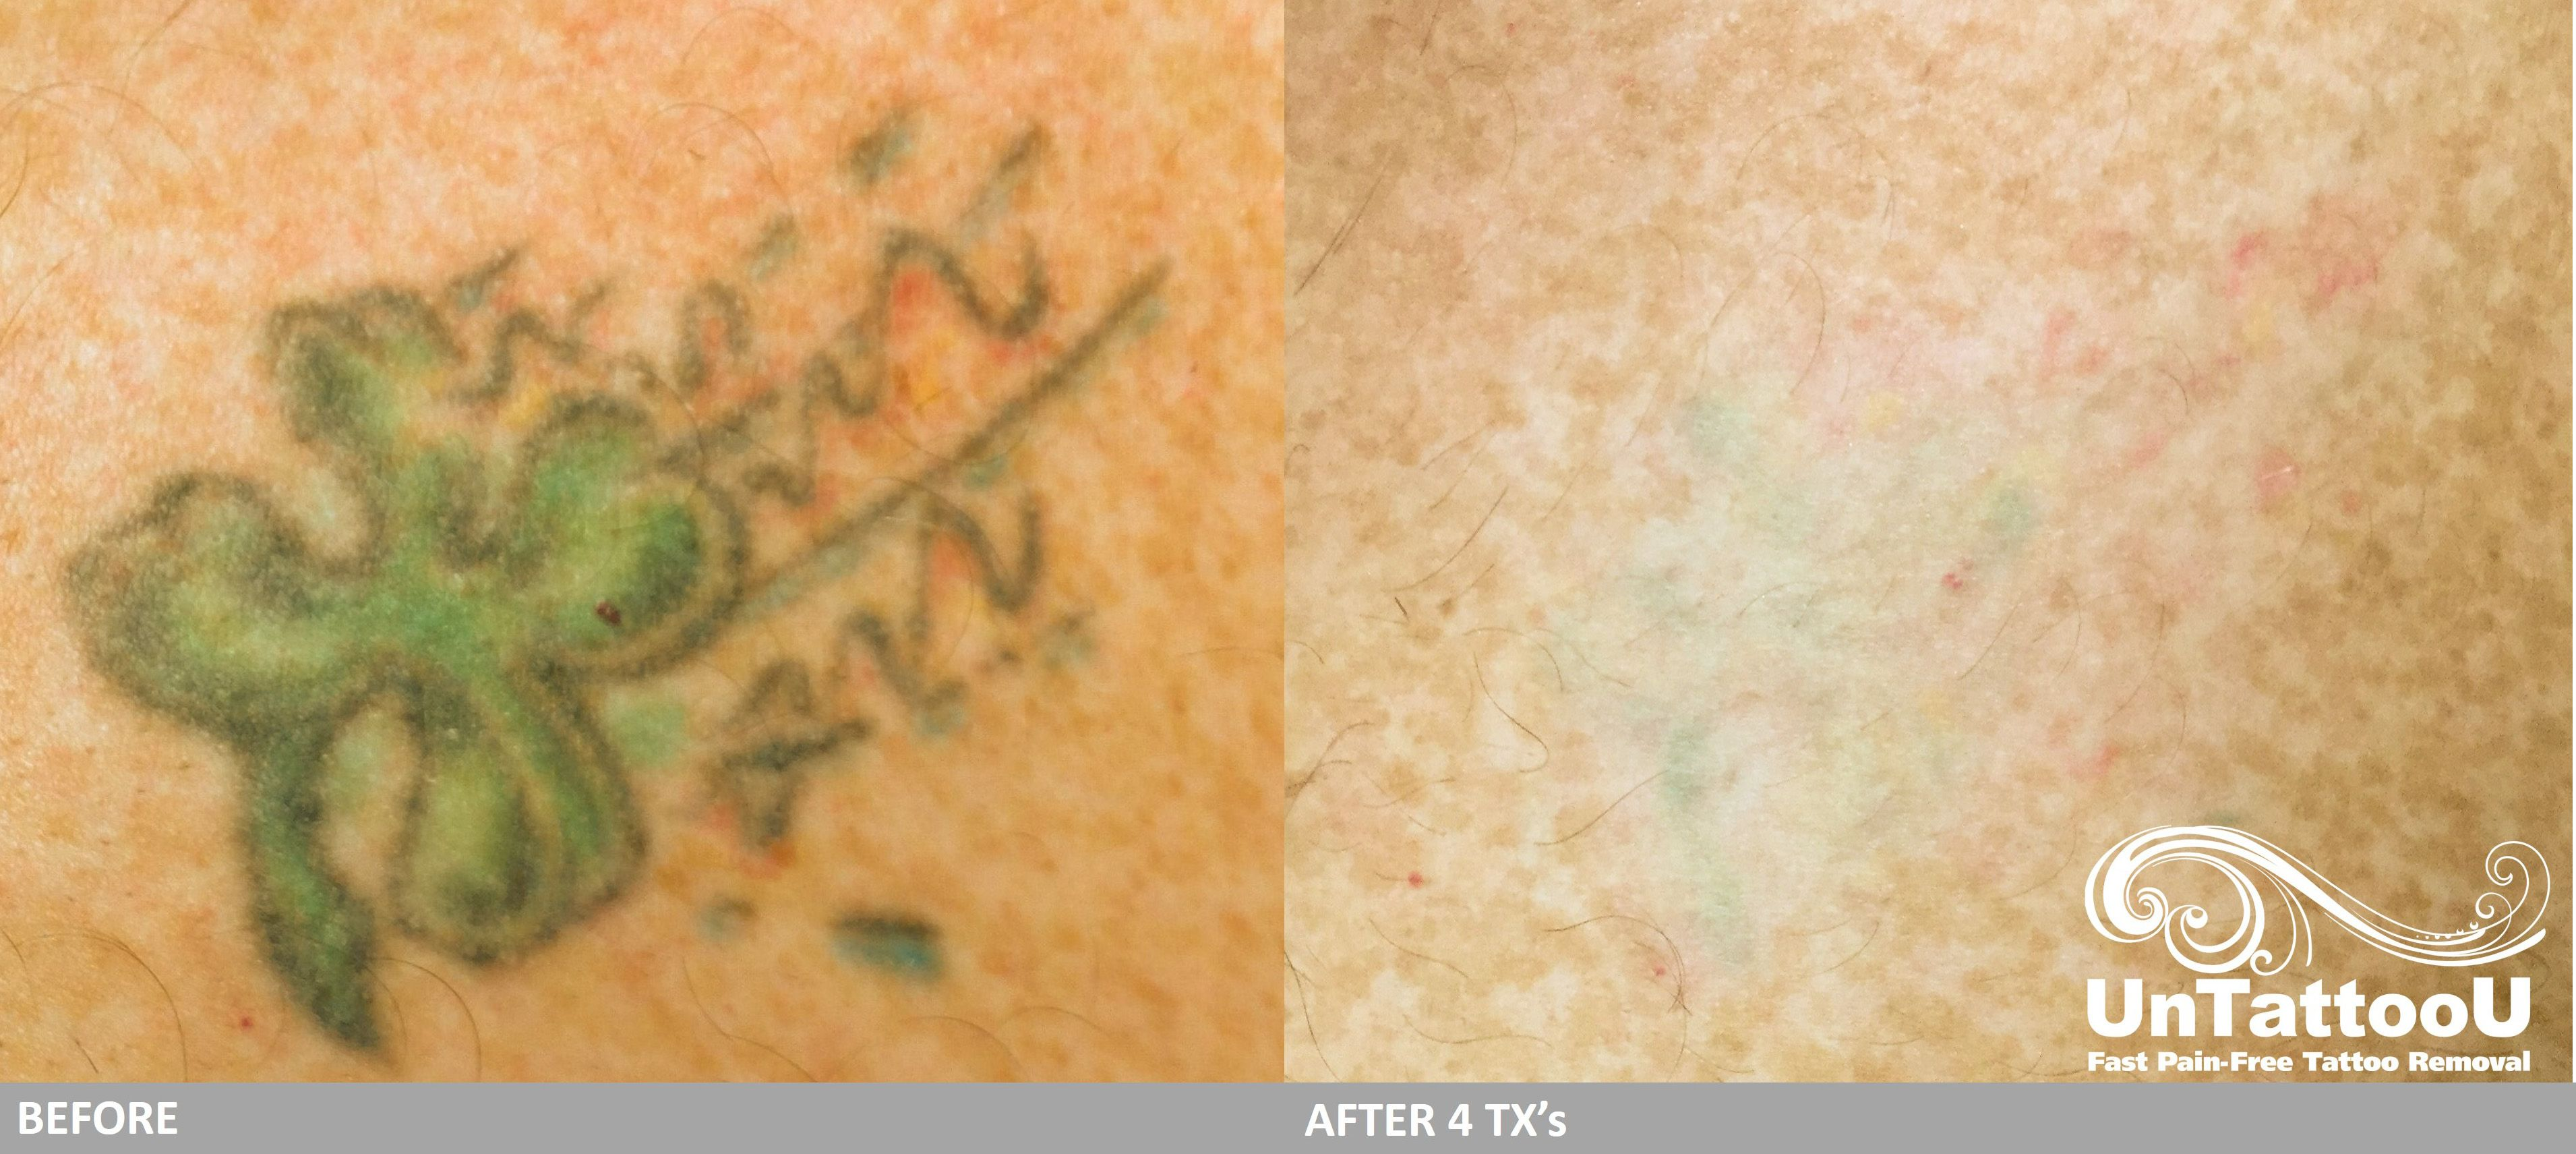 UnTattooU: Laser Tattoo Removal: Before & After 4 Treatments ...